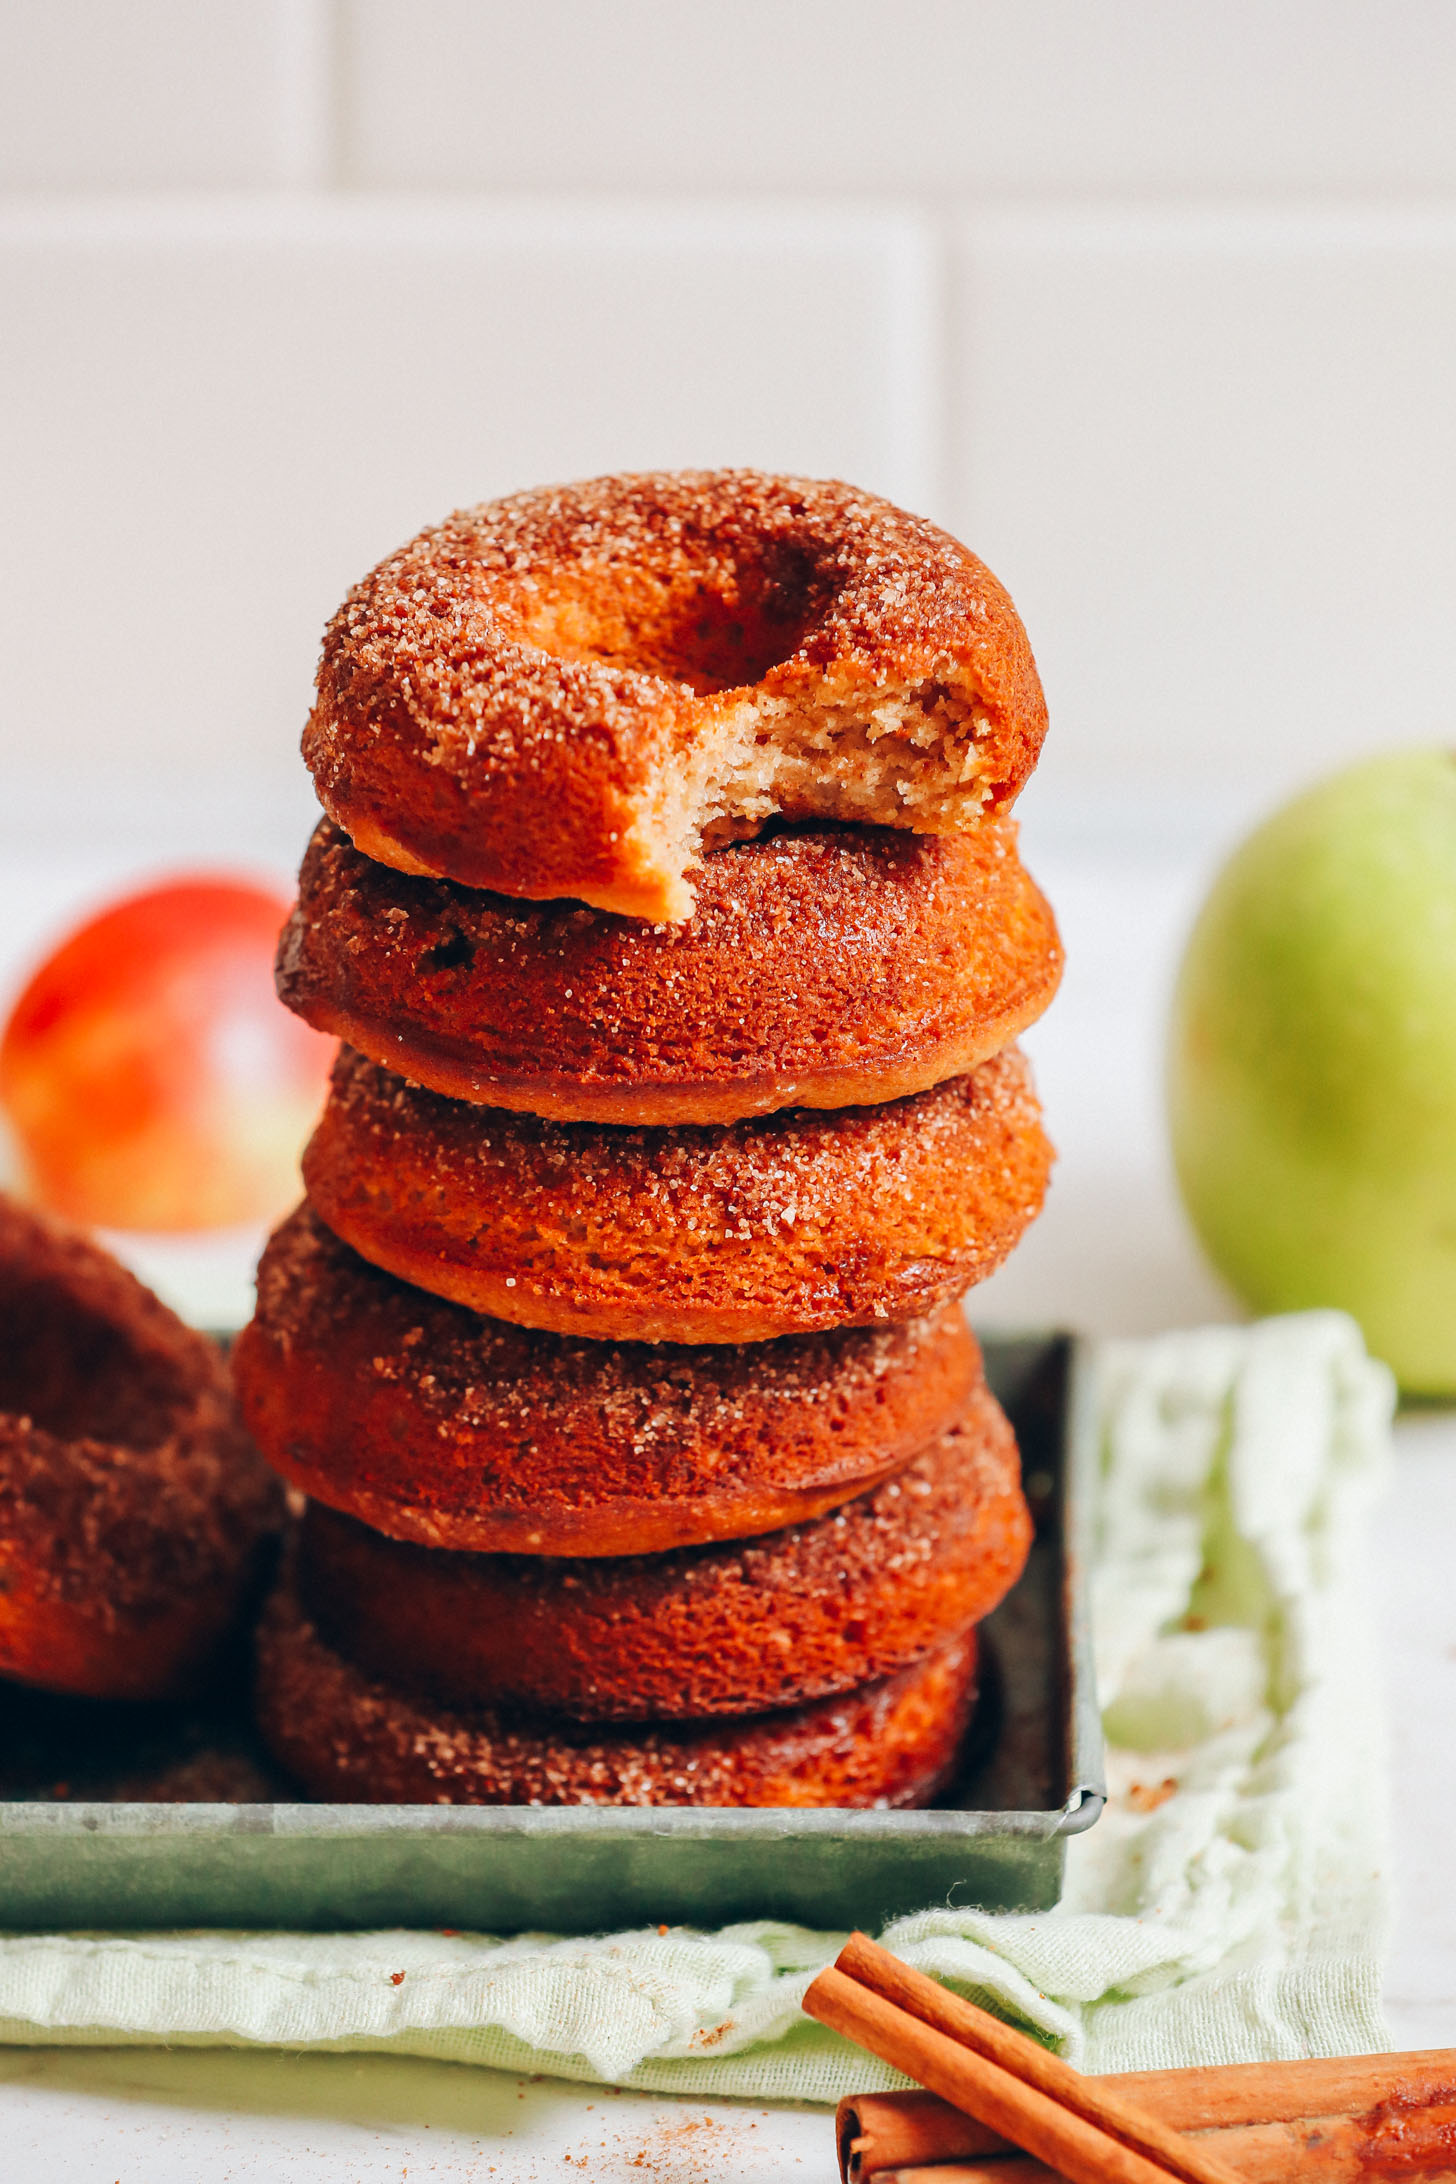 Stack of delicious Vegan Gluten-Free Apple Cider Donuts resting on a metal tray